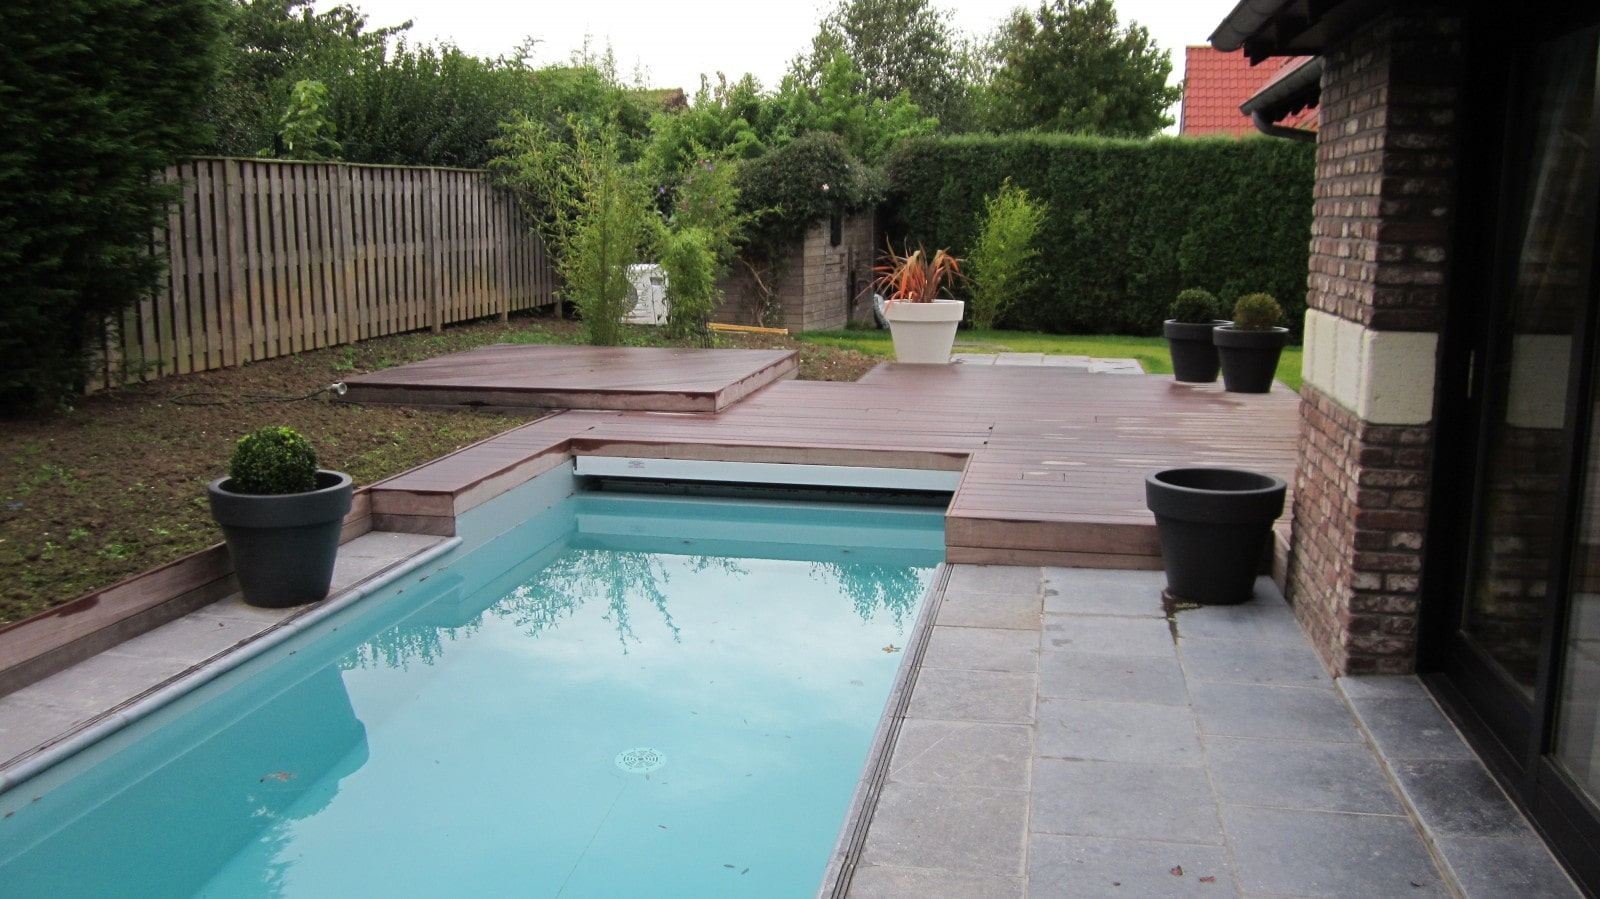 Abords de piscine lesquin architecte paysagiste 59 for Paysagiste piscine